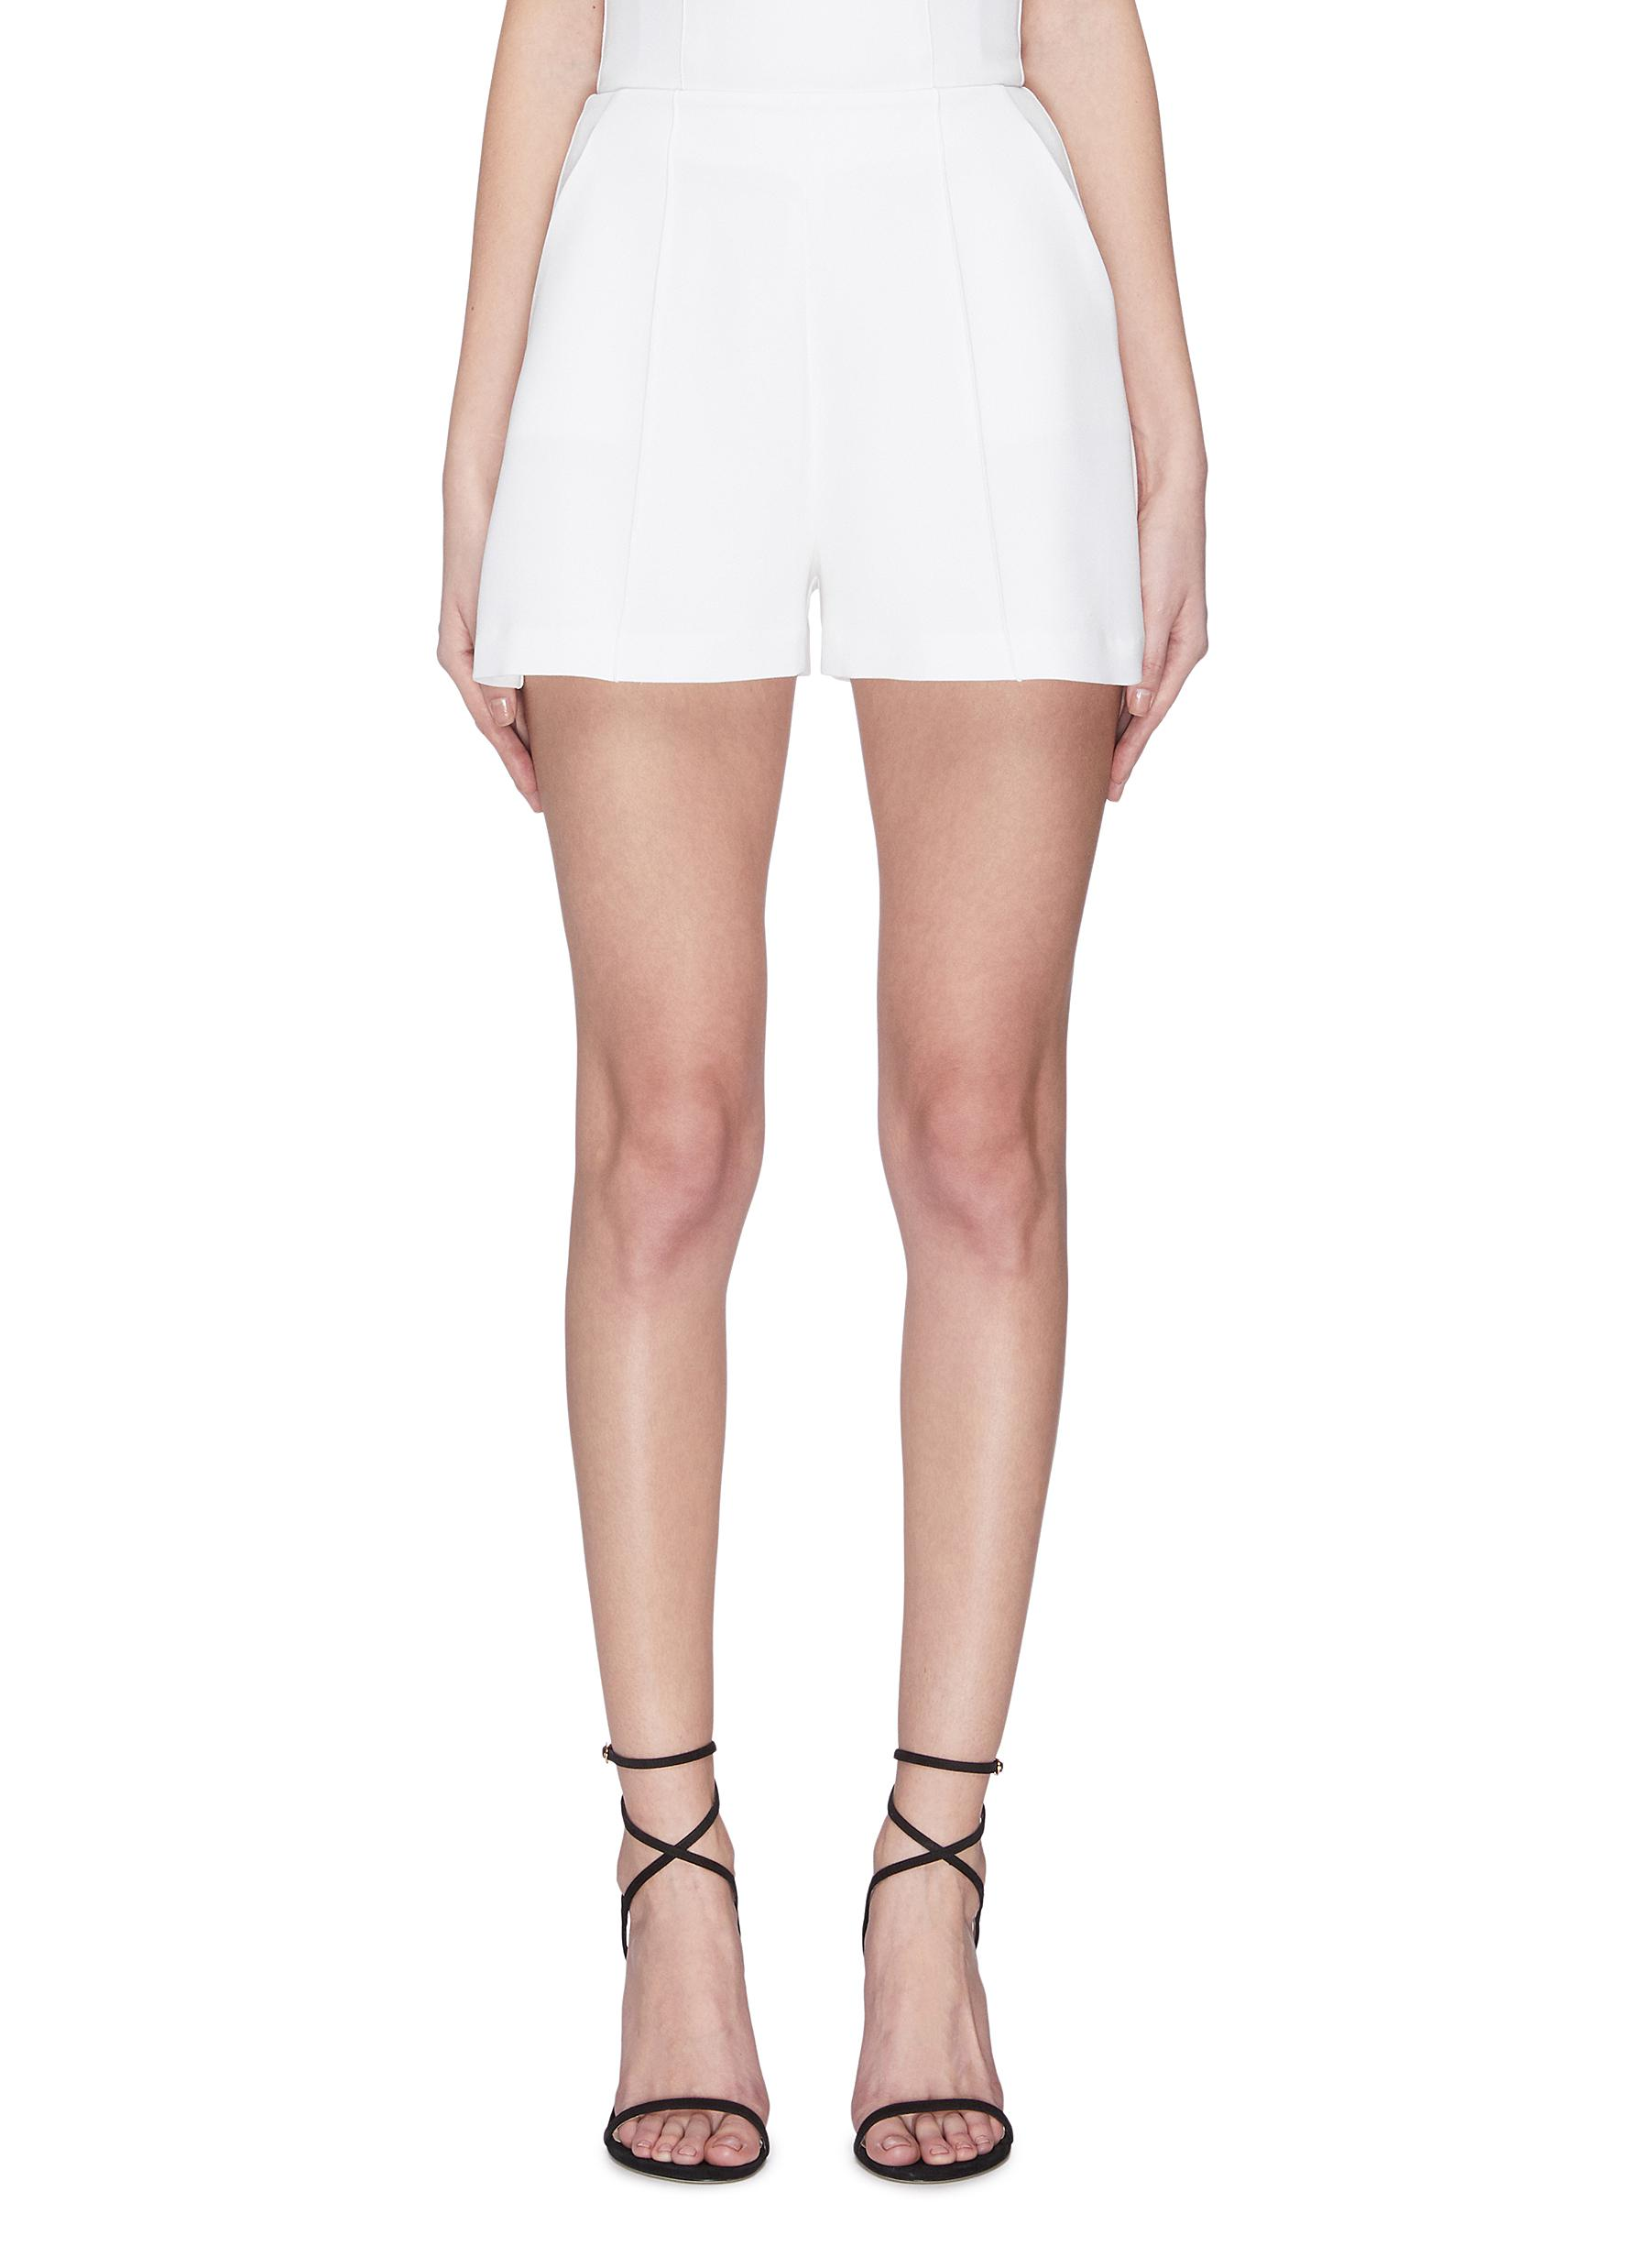 Buy Alex Perry Pants & Shorts Crepe mini shorts